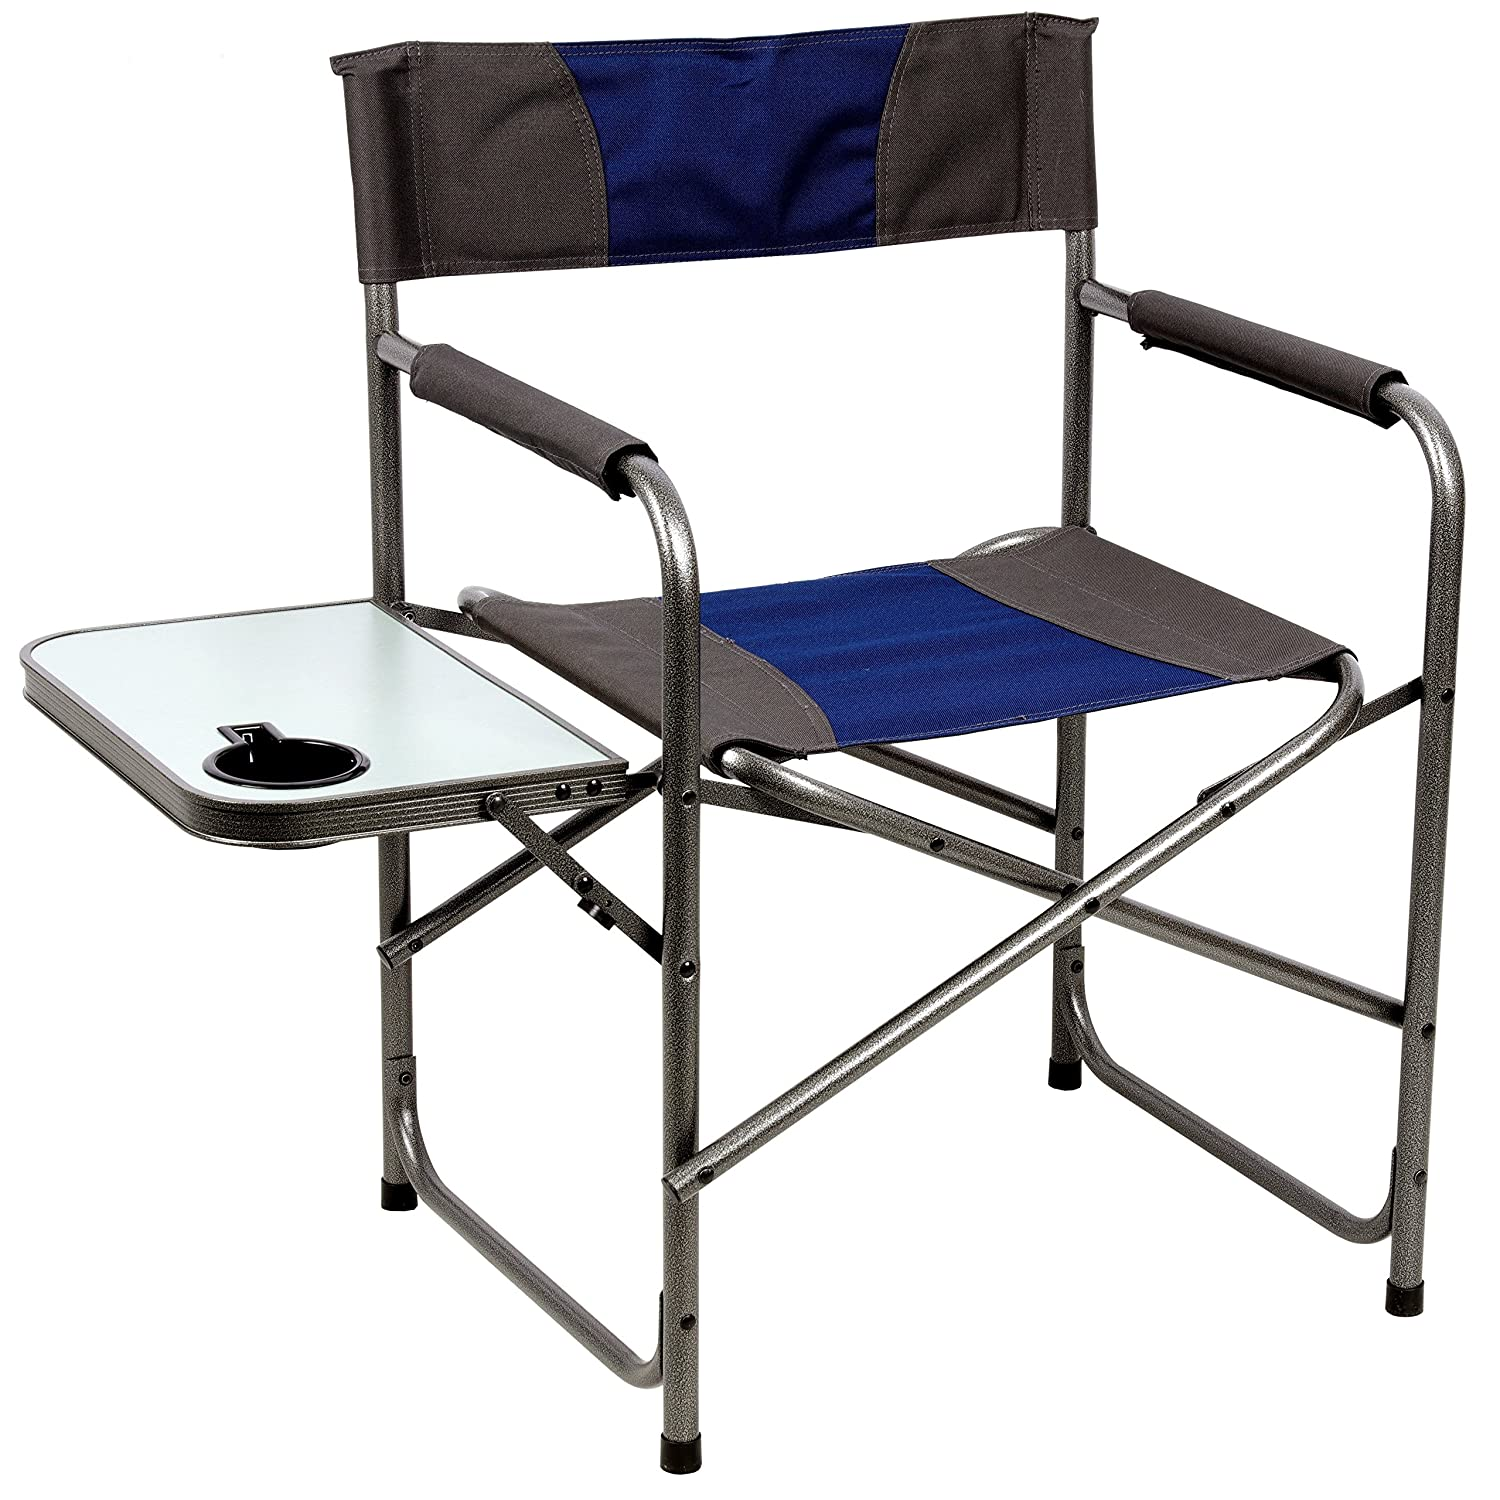 Portal Compact Steel Frame Folding Director s Chair Portable Camping Chair with Side Table, Supports 225 LBS